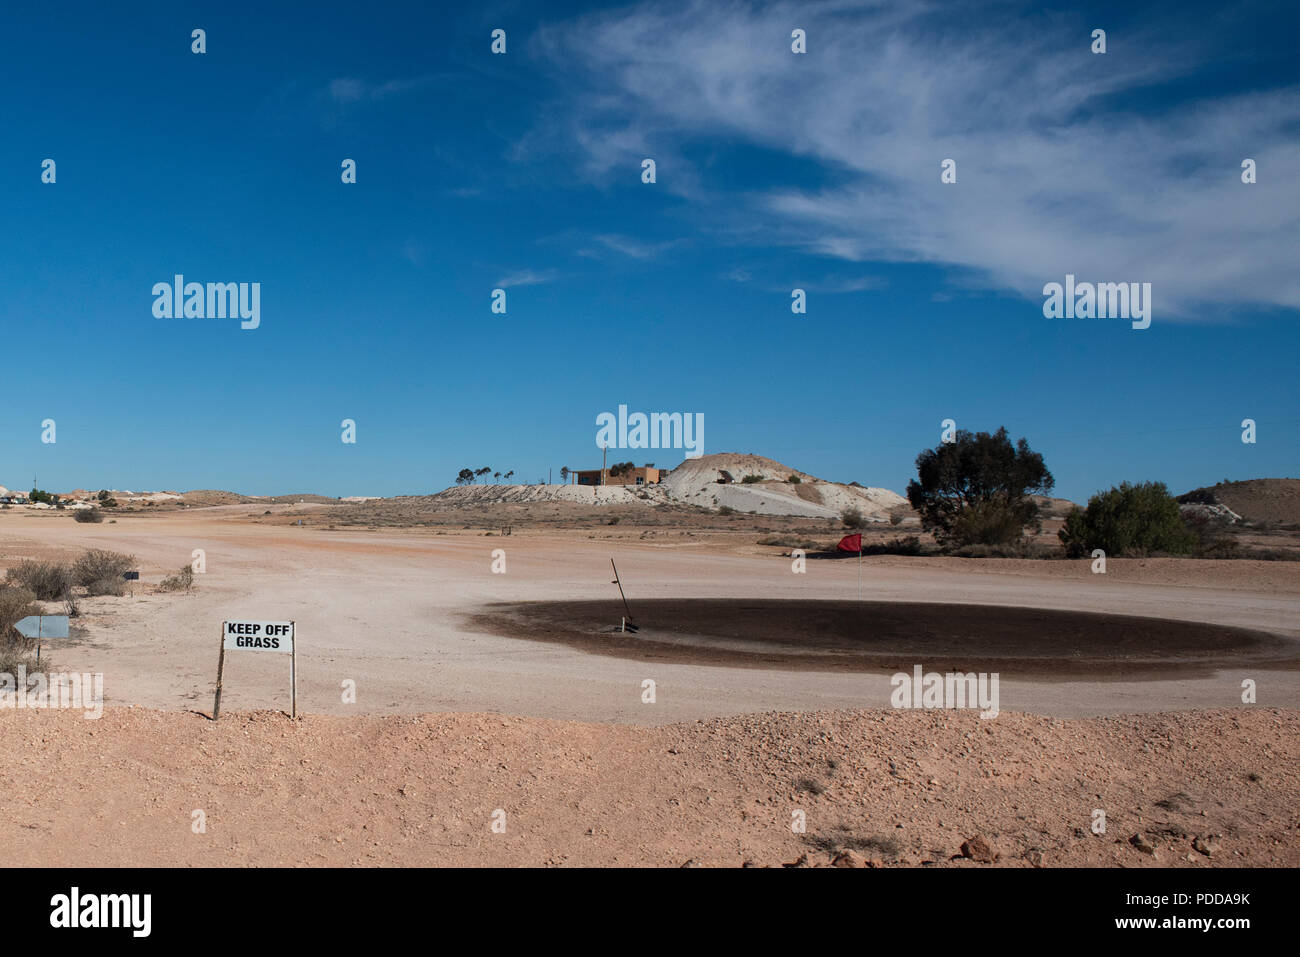 Australia, South Australia, Coober Pedy. Unique Opal Fields Golf Club, 18 hole completely grassless golf course, Keep Off the Grass sign. Oil soaked ' - Stock Image